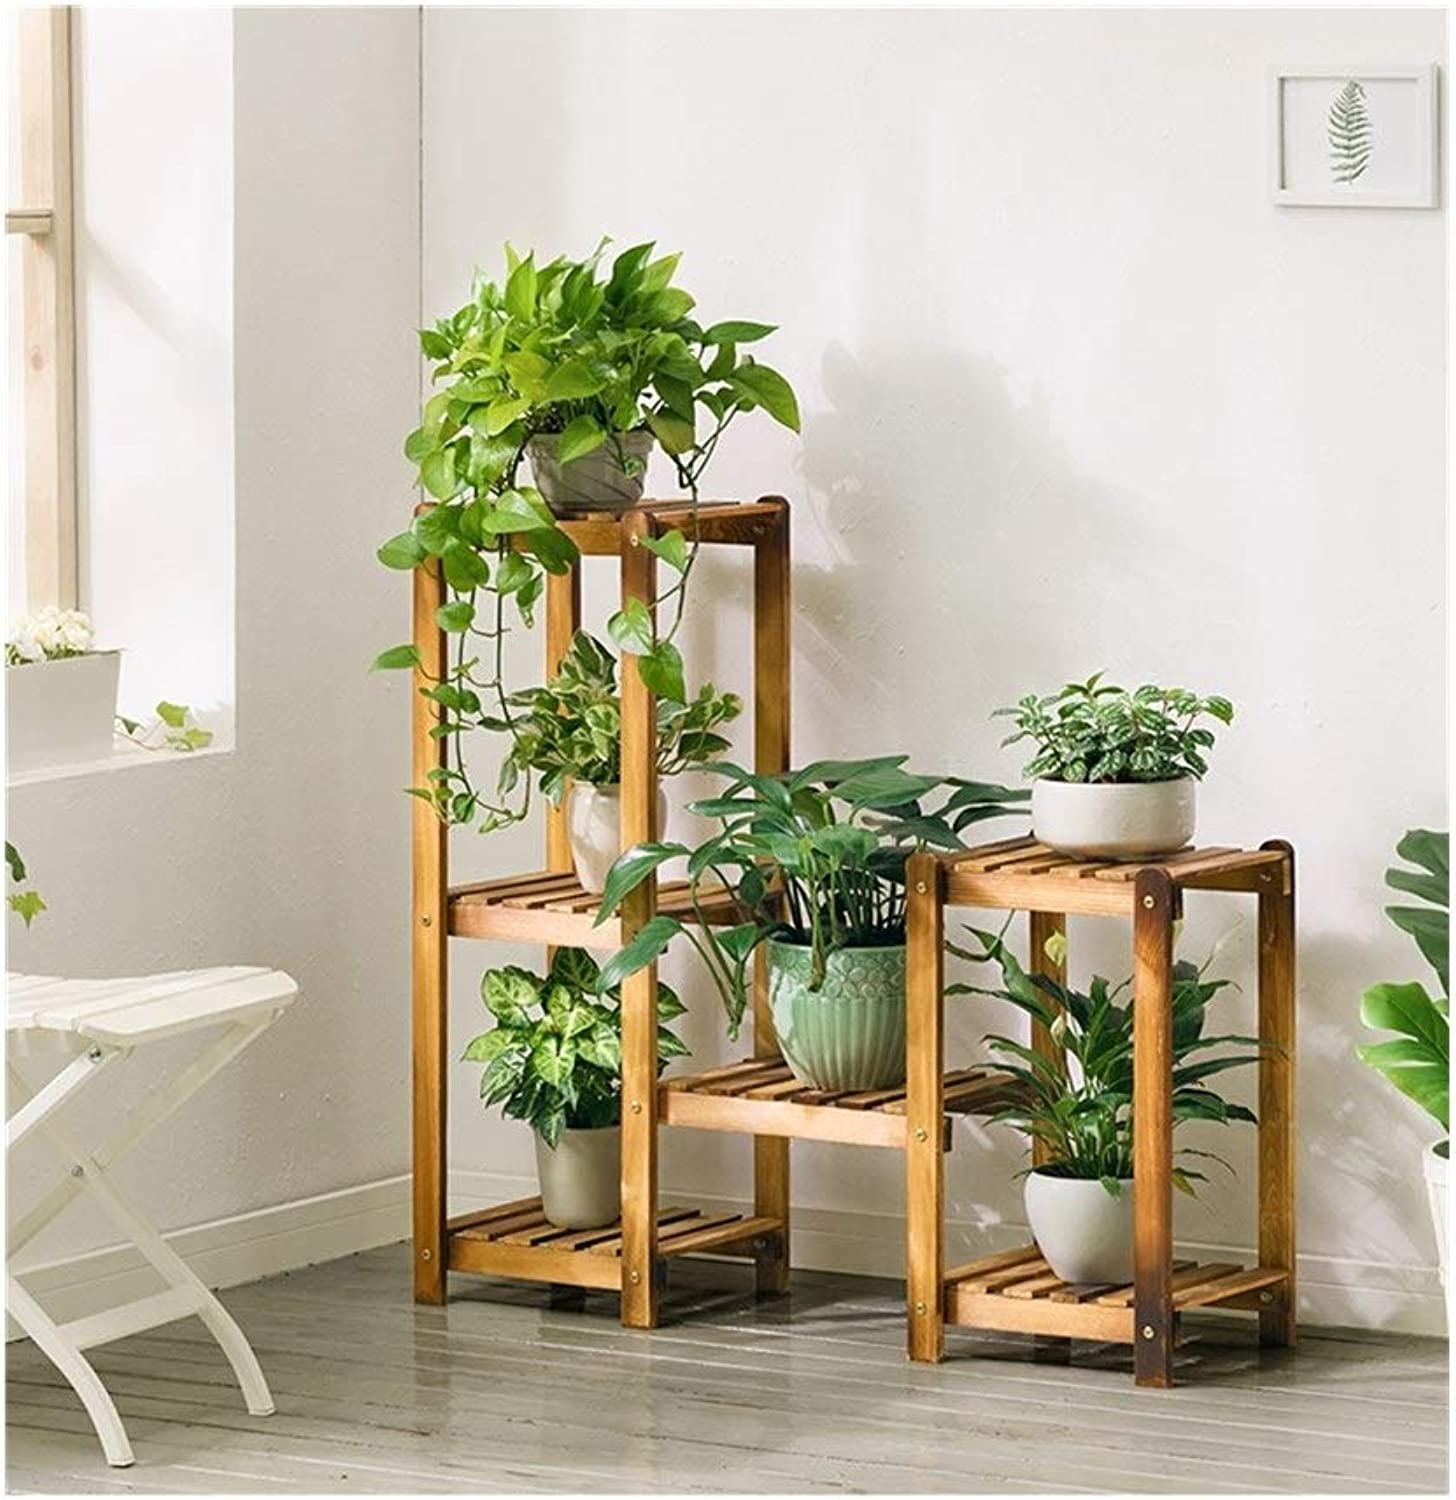 Plant Storage Rack Combination Flower Stand, Wooden Flower Display Stand, Indoor Flower Stand, Plant Ladder Stand, Indoor and Outdoor Home Decoration (Size   3 Tier+2 Tier)